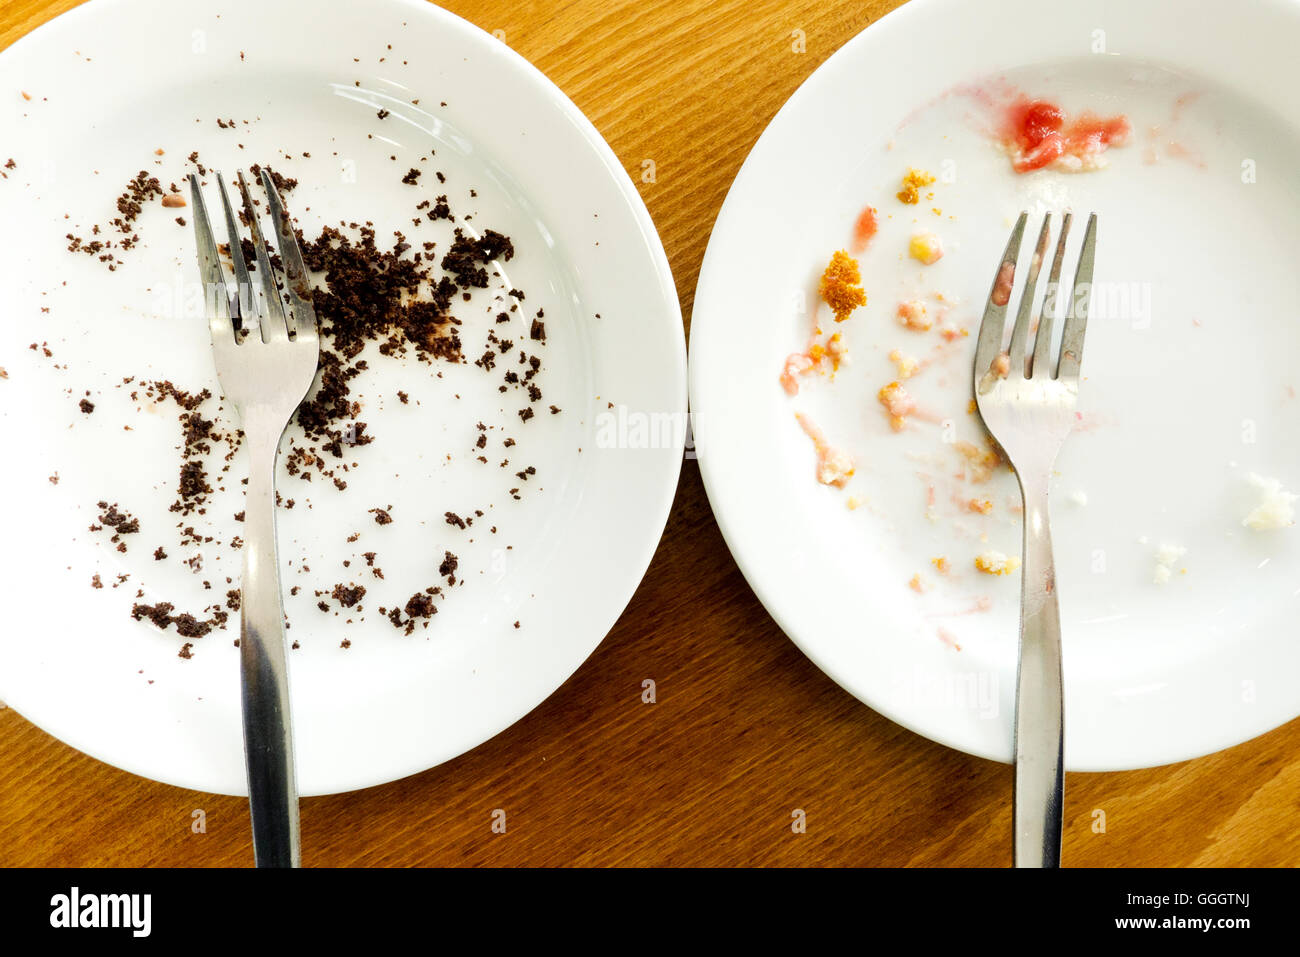 two white plates with forks and crumbs - Stock Image